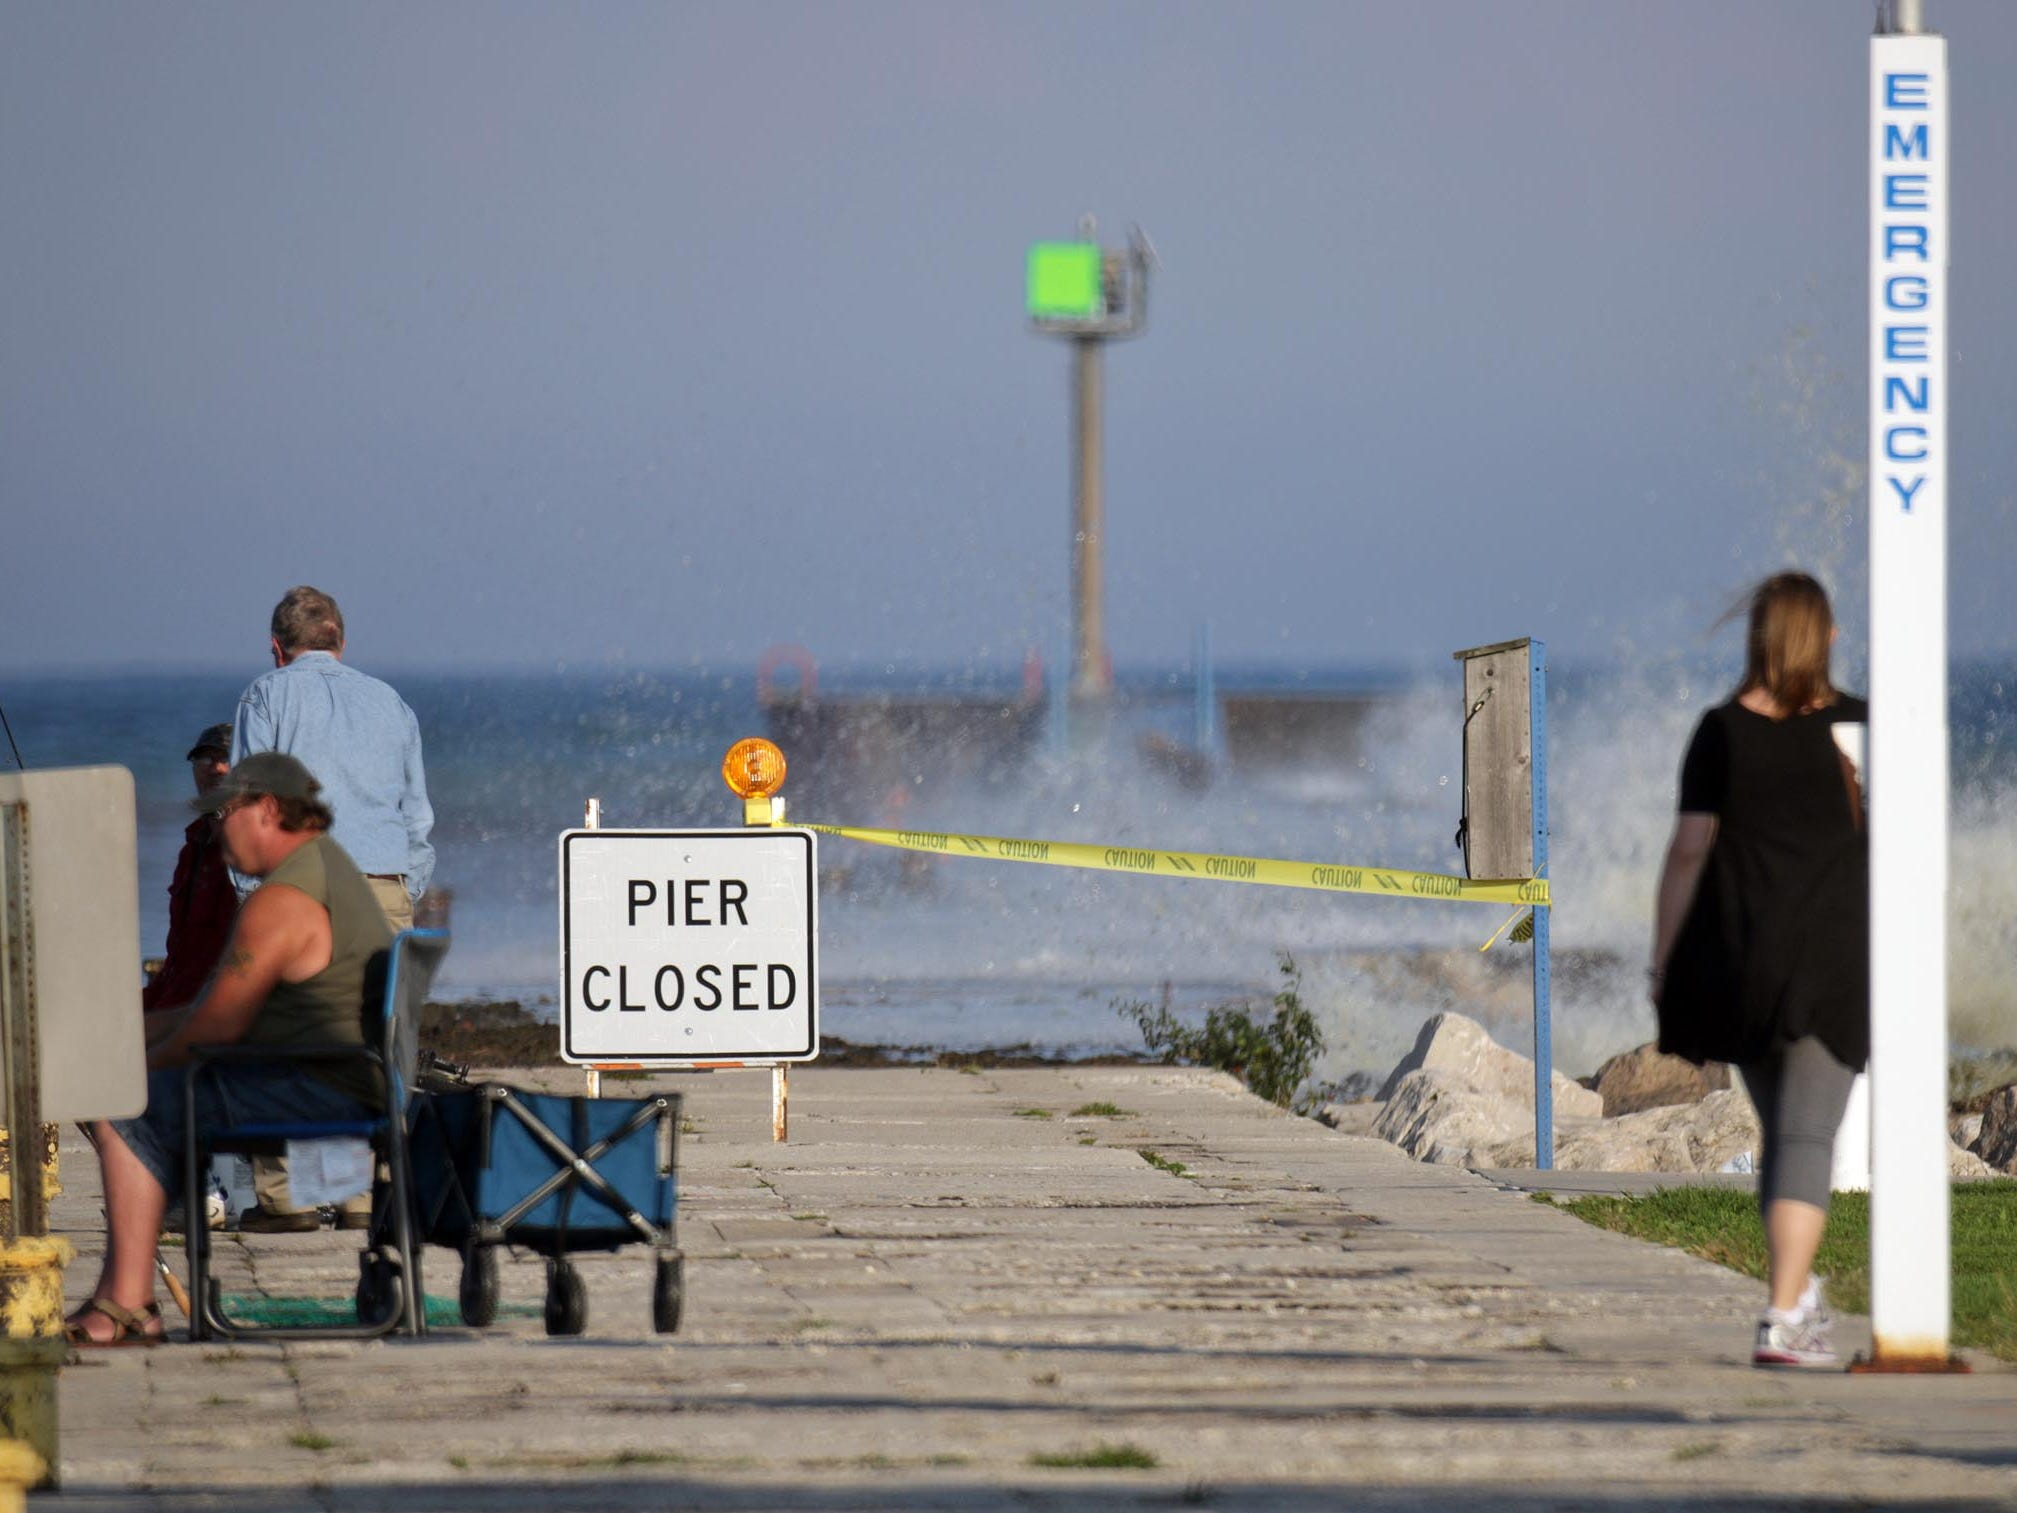 Strong Lake Michigan waves caused officials to close off the South Pier on Oct. 5, 2016, in Sheboygan, Wis.  FILE PHOTO